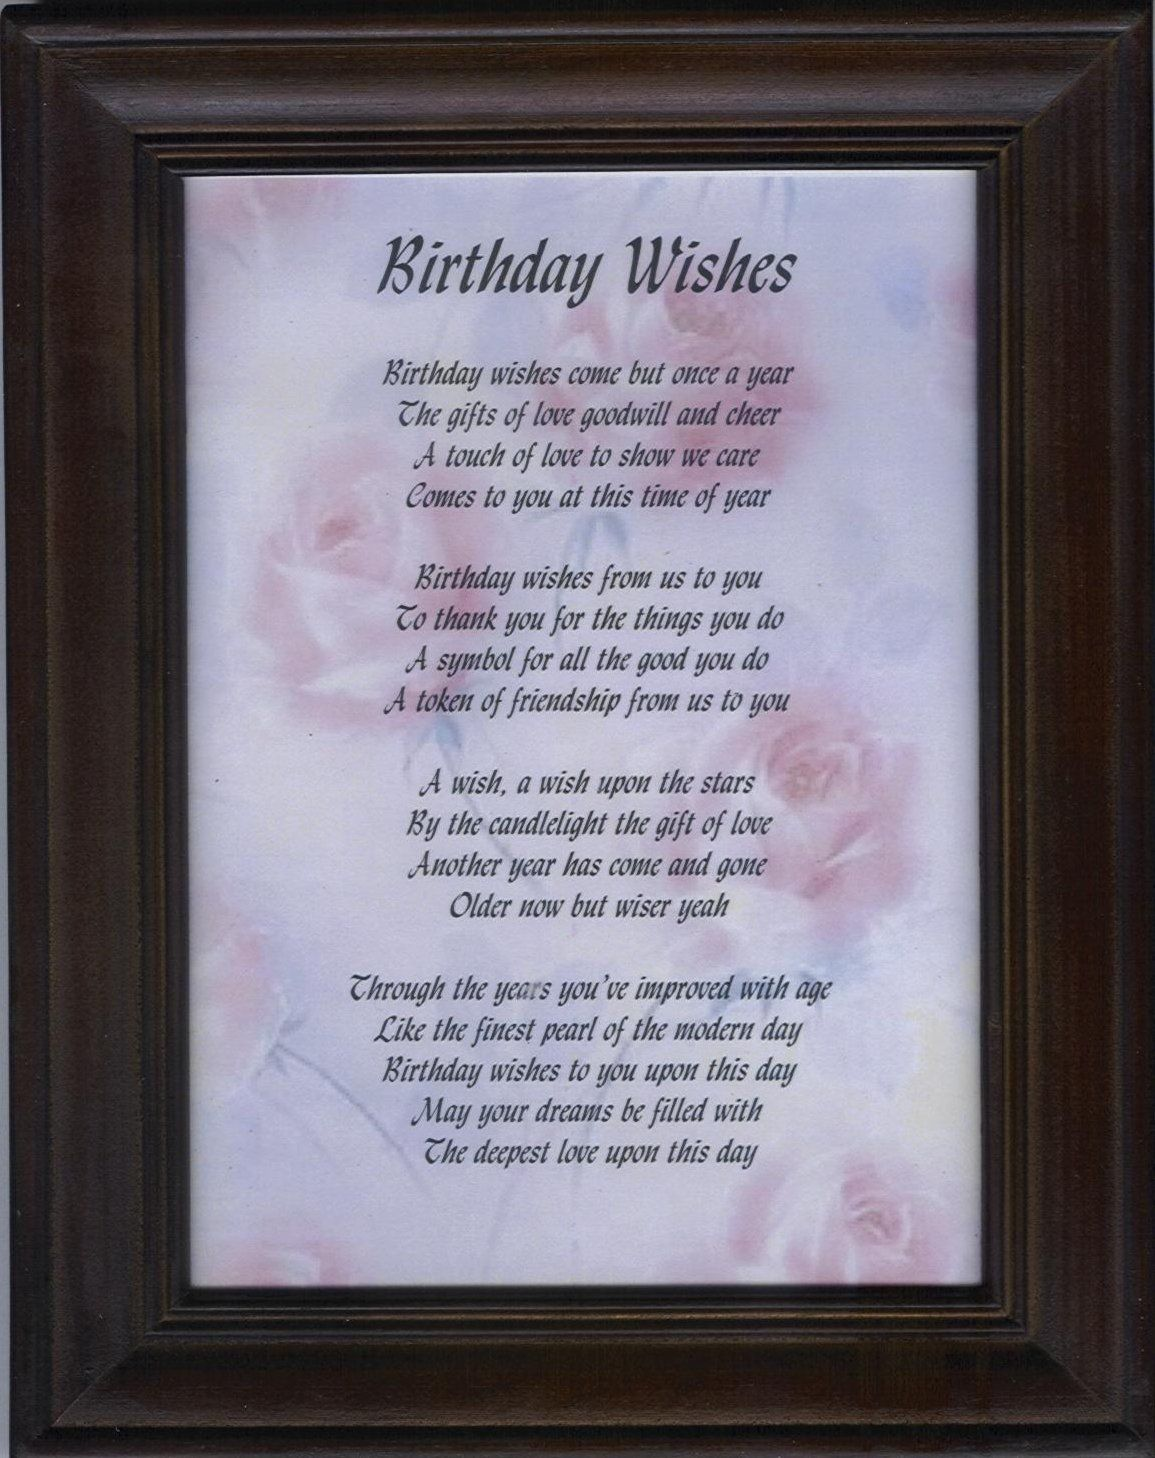 Birthday Wishes Inspirational Friend ~ Inspirational birthday wishes family you have many more and may all your come true